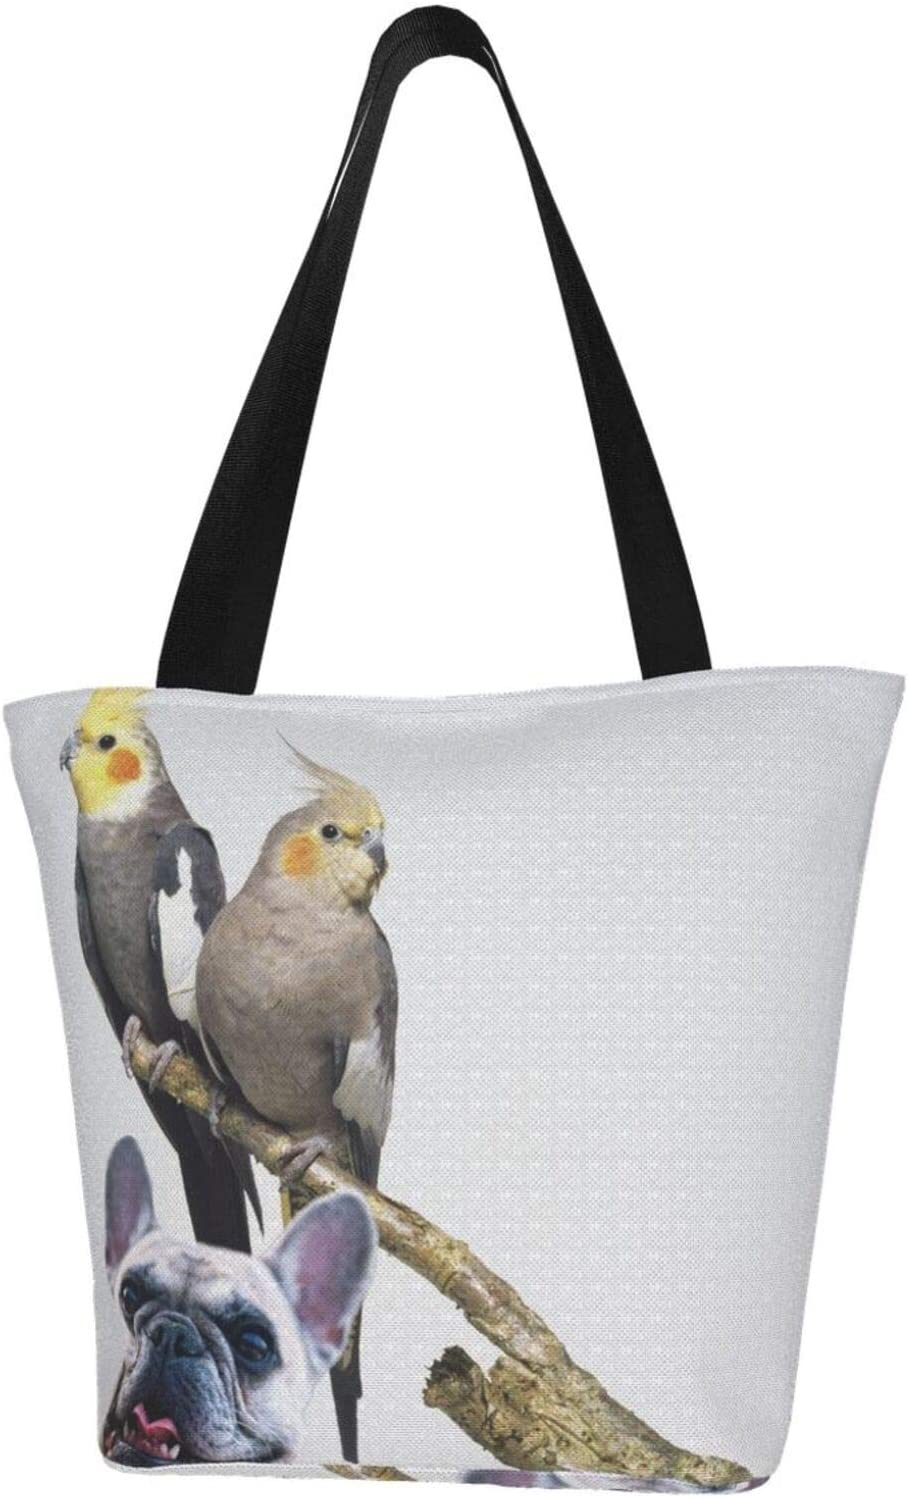 AKLID Cockatiel Extra Large Water Canvas Resistant Ranking TOP7 Tote Rapid rise for Bag